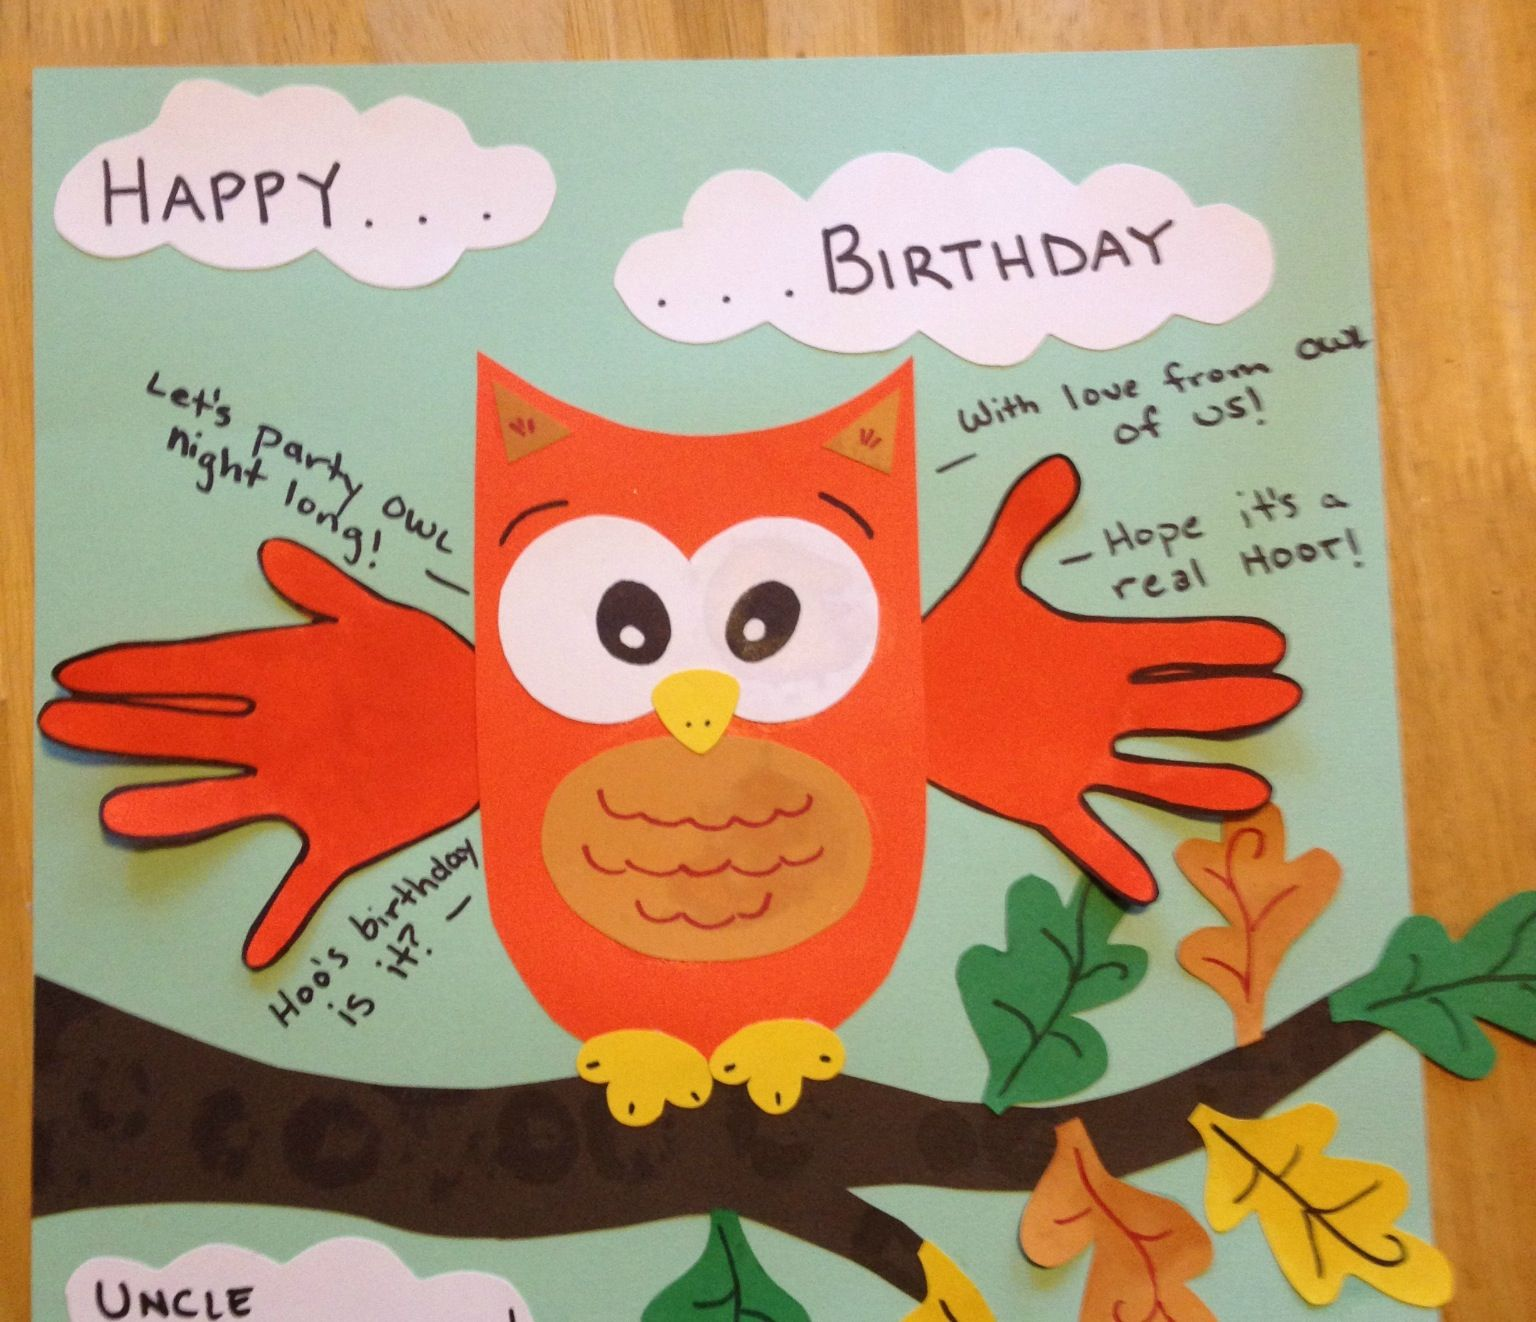 Happy birthday card handprint art With love from OWL of us